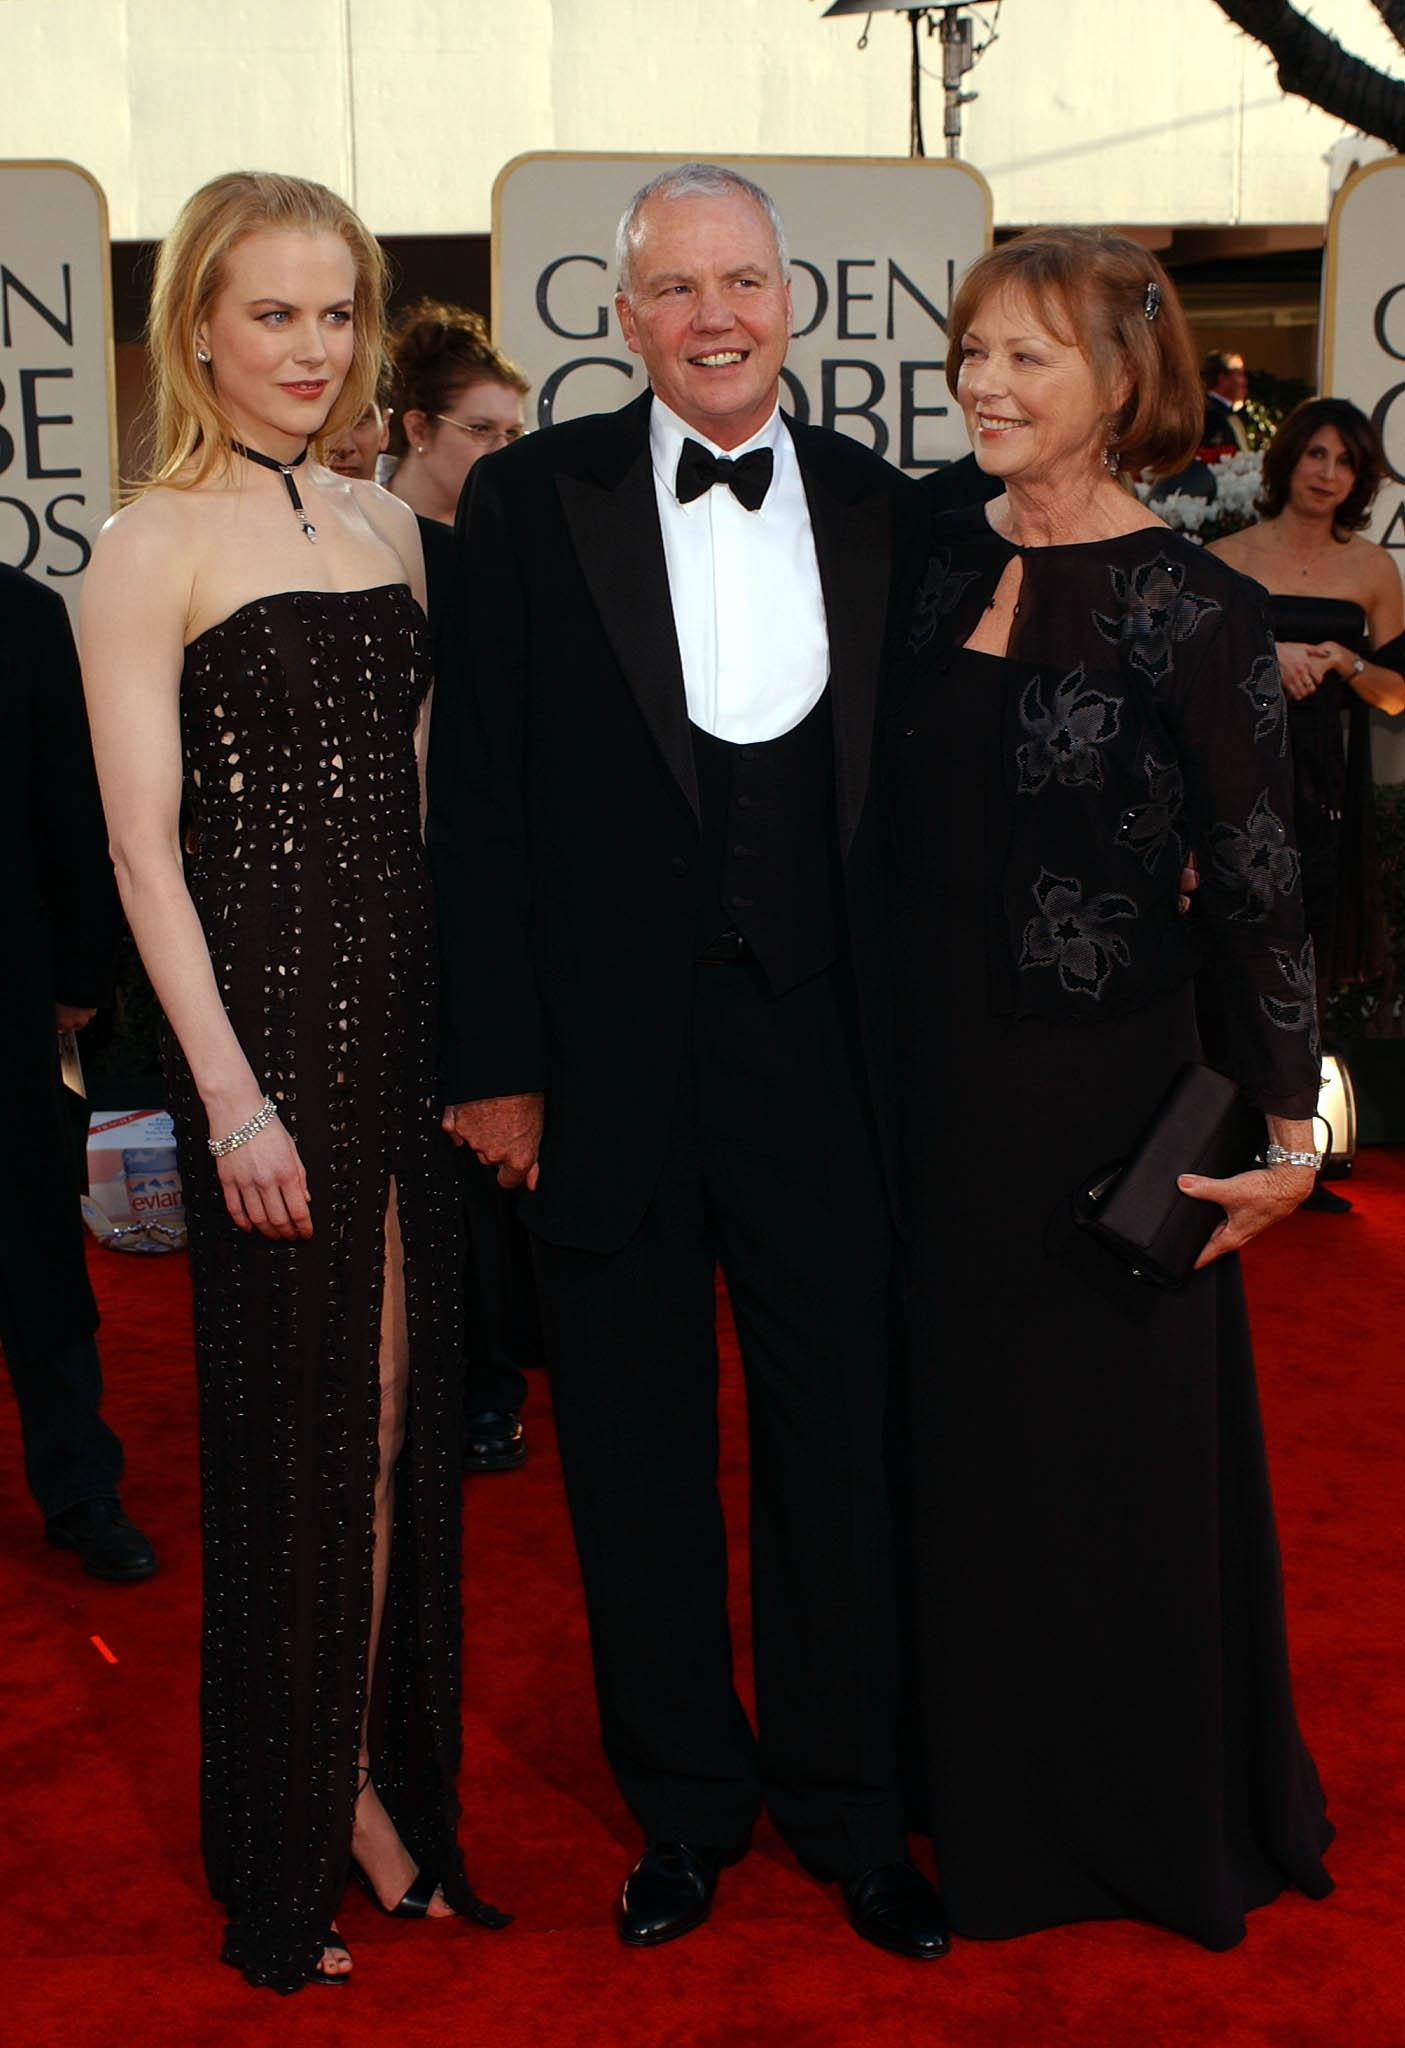 Nicole Kidman and her parents Antony and Janelle Kidman arrive at the 59th Annual Golden Globe Awards at the Beverly Hilton in Beverly Hills in 2002.